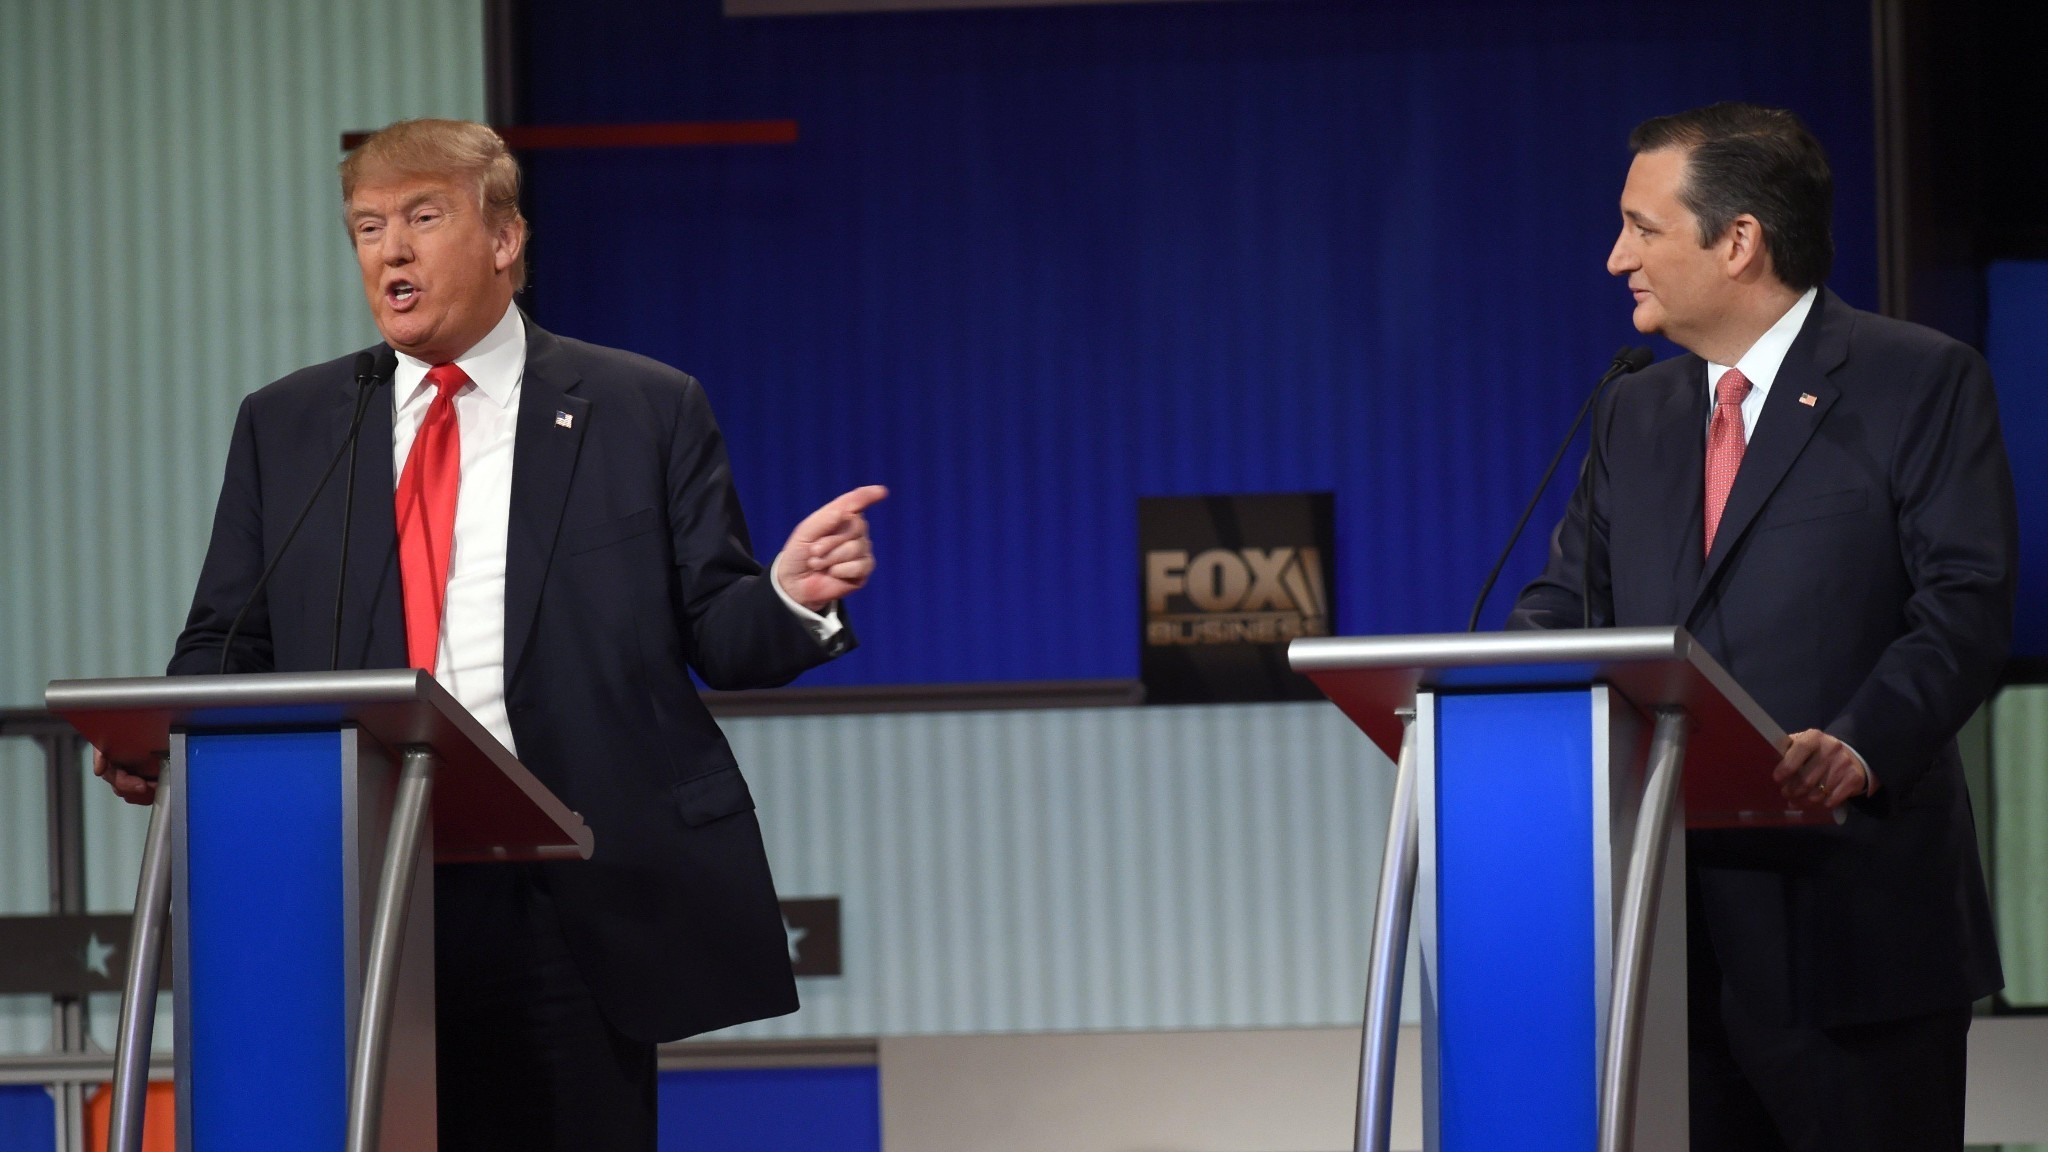 Muslims, guns and 'New York values': tensions boil over at Republican debate